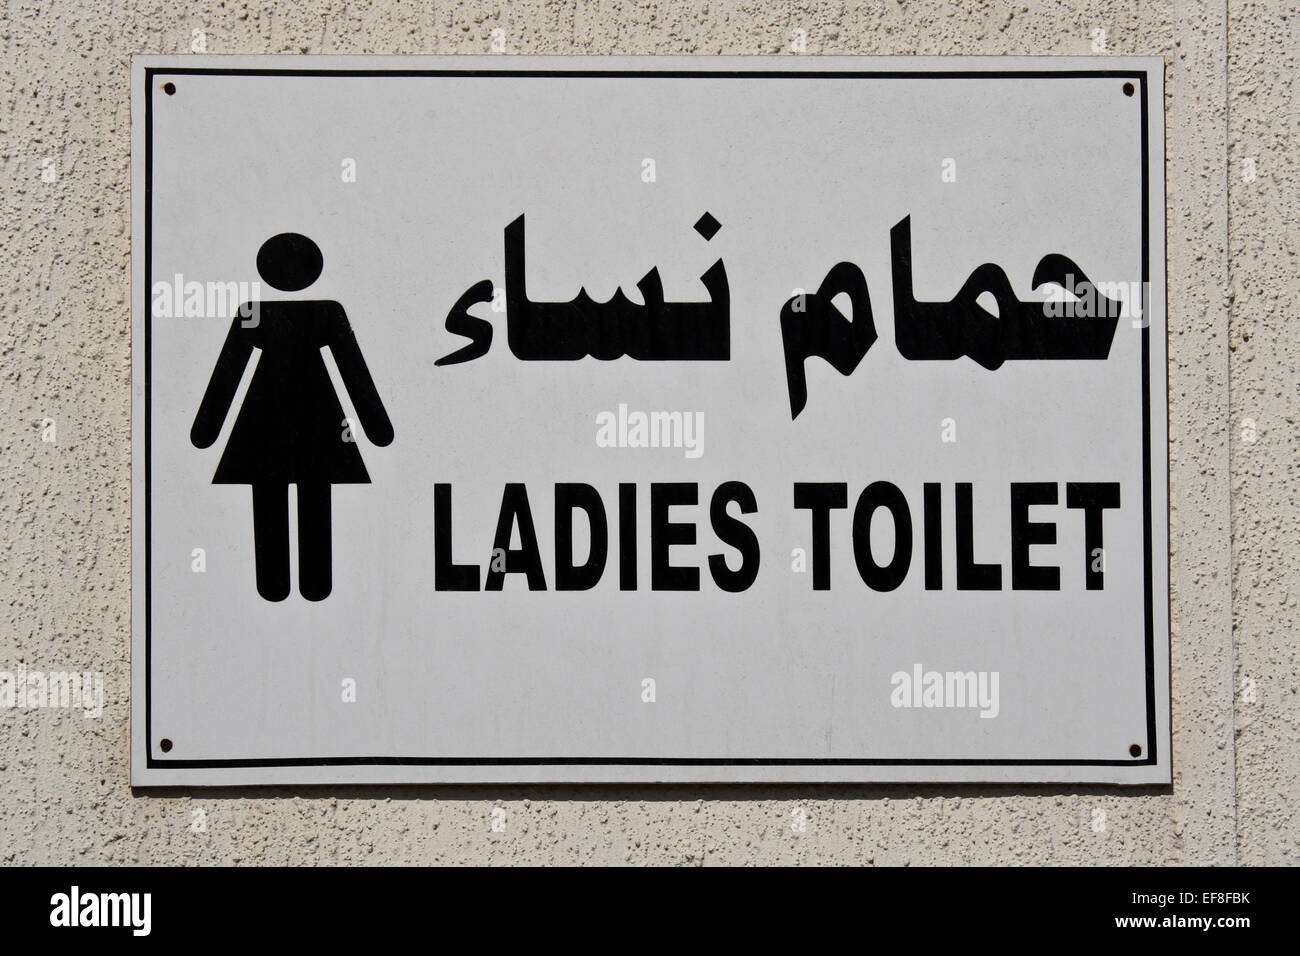 Toilet Sign In English And Arabic Stock Photo 78249015